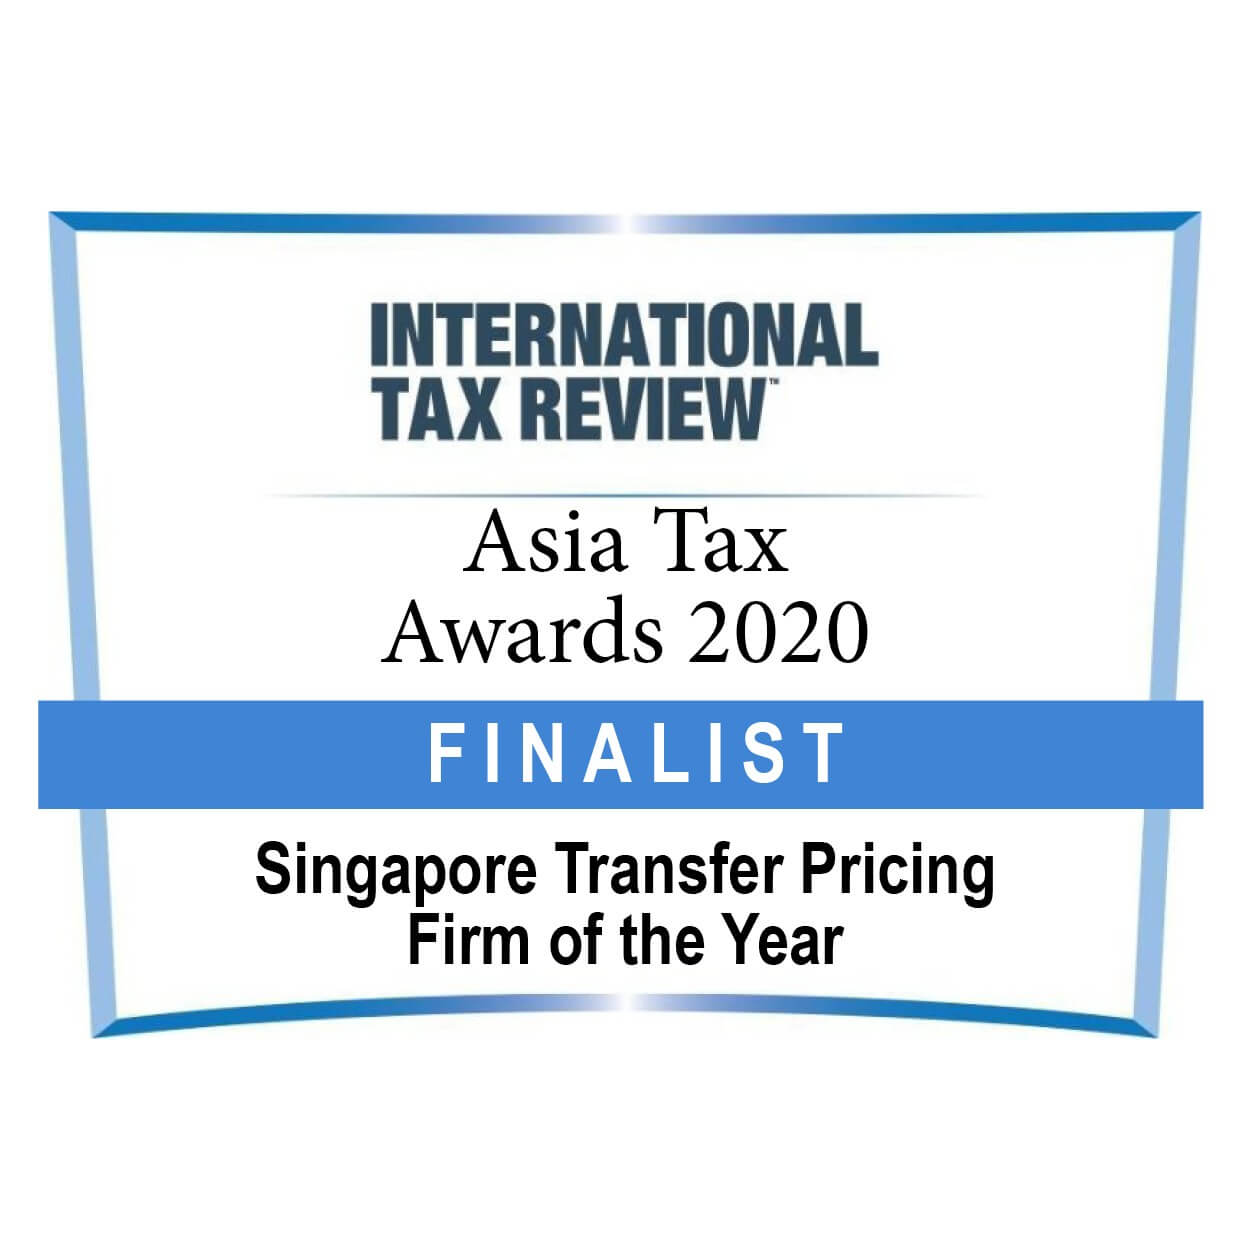 Singapore TP Firm - 2020